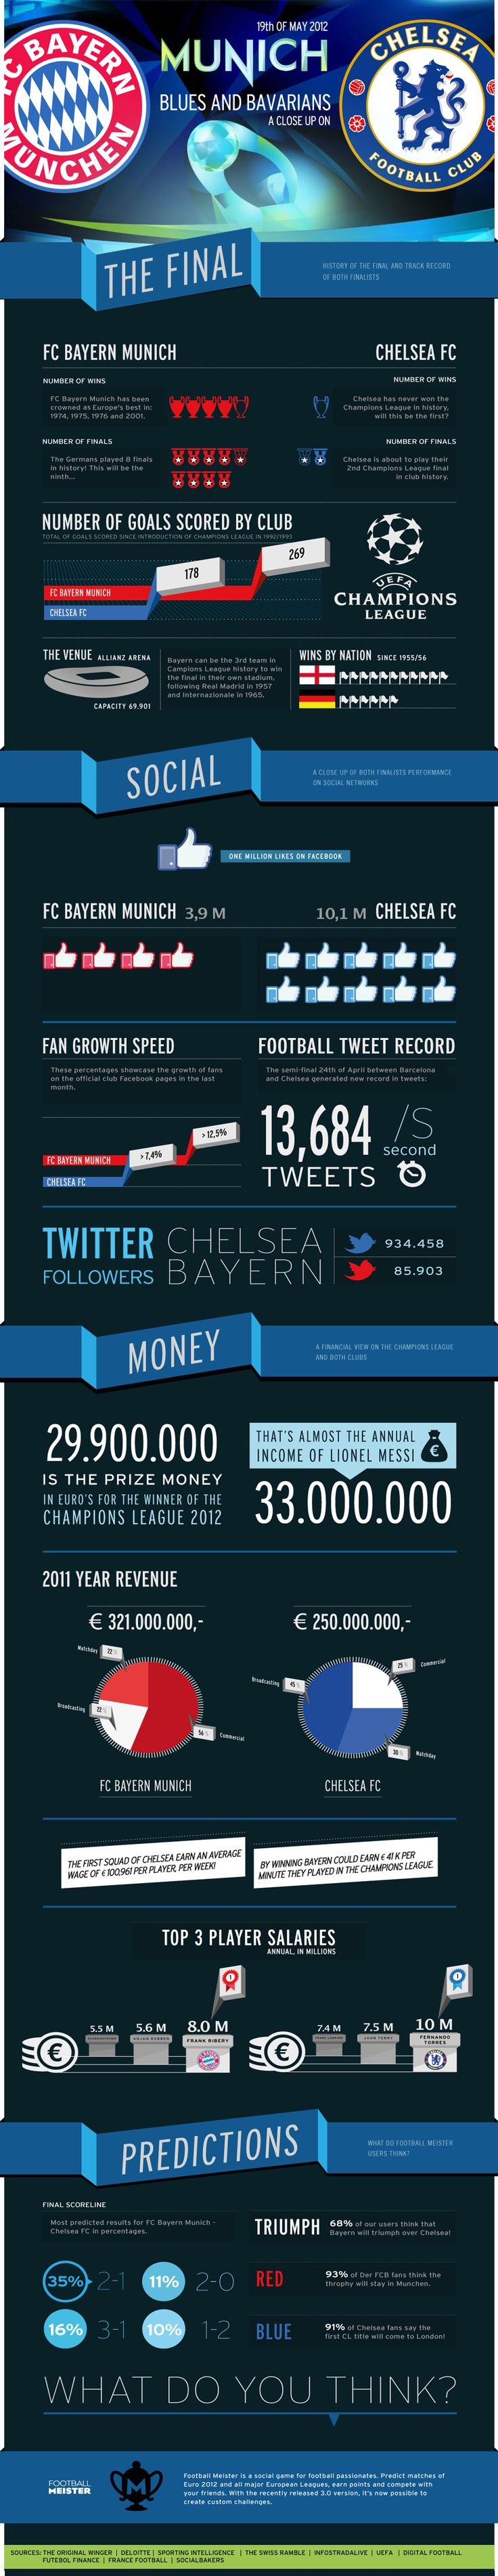 [INFOGRAPHIC] The Blues and Bavarians: a close up on the European track record of both teams and Chelsea and Bayern head‐to‐head on social and financial stand point too.